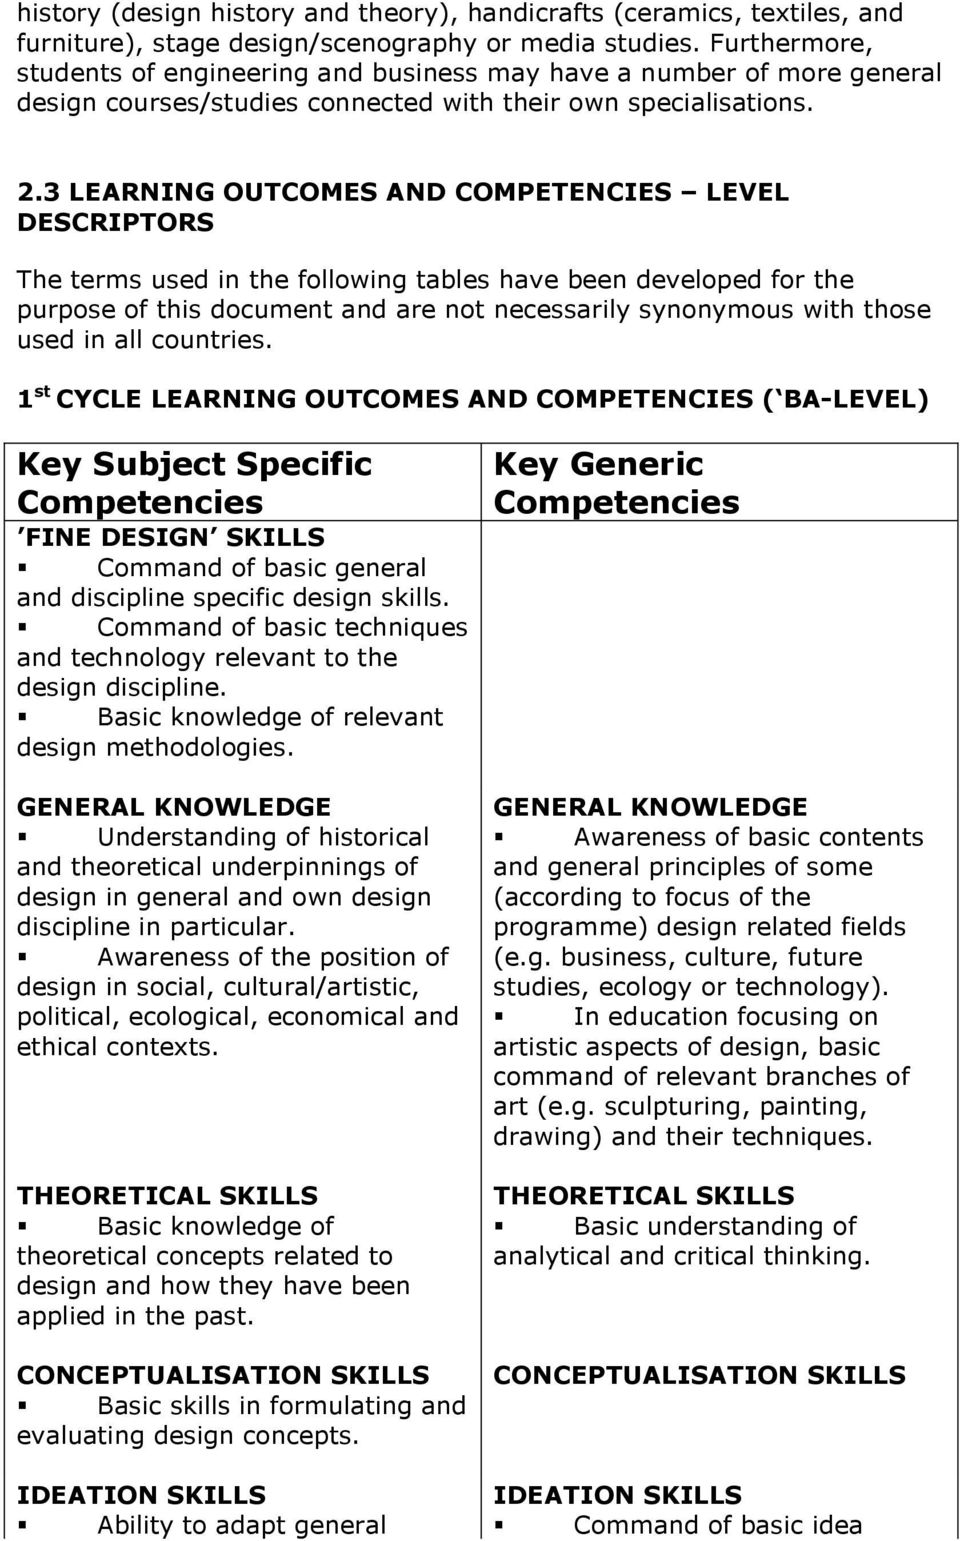 3 LEARNING OUTCOMES AND COMPETENCIES LEVEL DESCRIPTORS The terms used in the following tables have been developed for the purpose of this document and are not necessarily synonymous with those used